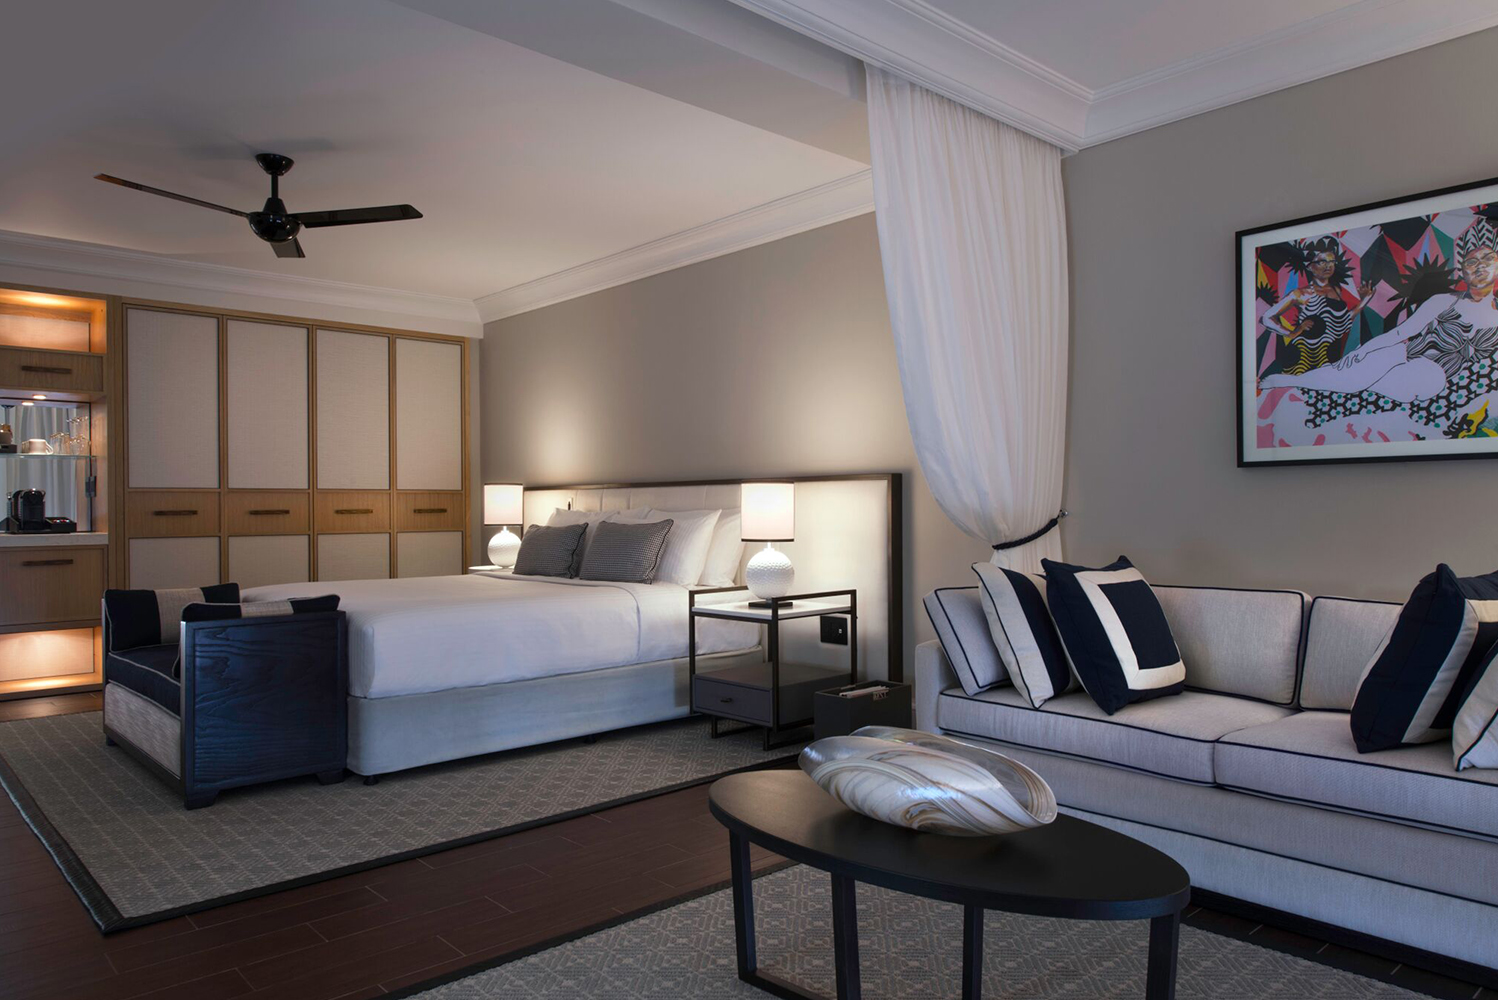 London-based Richmond International led the renovation, drawing inspiration for its new design concept from the resort's location.